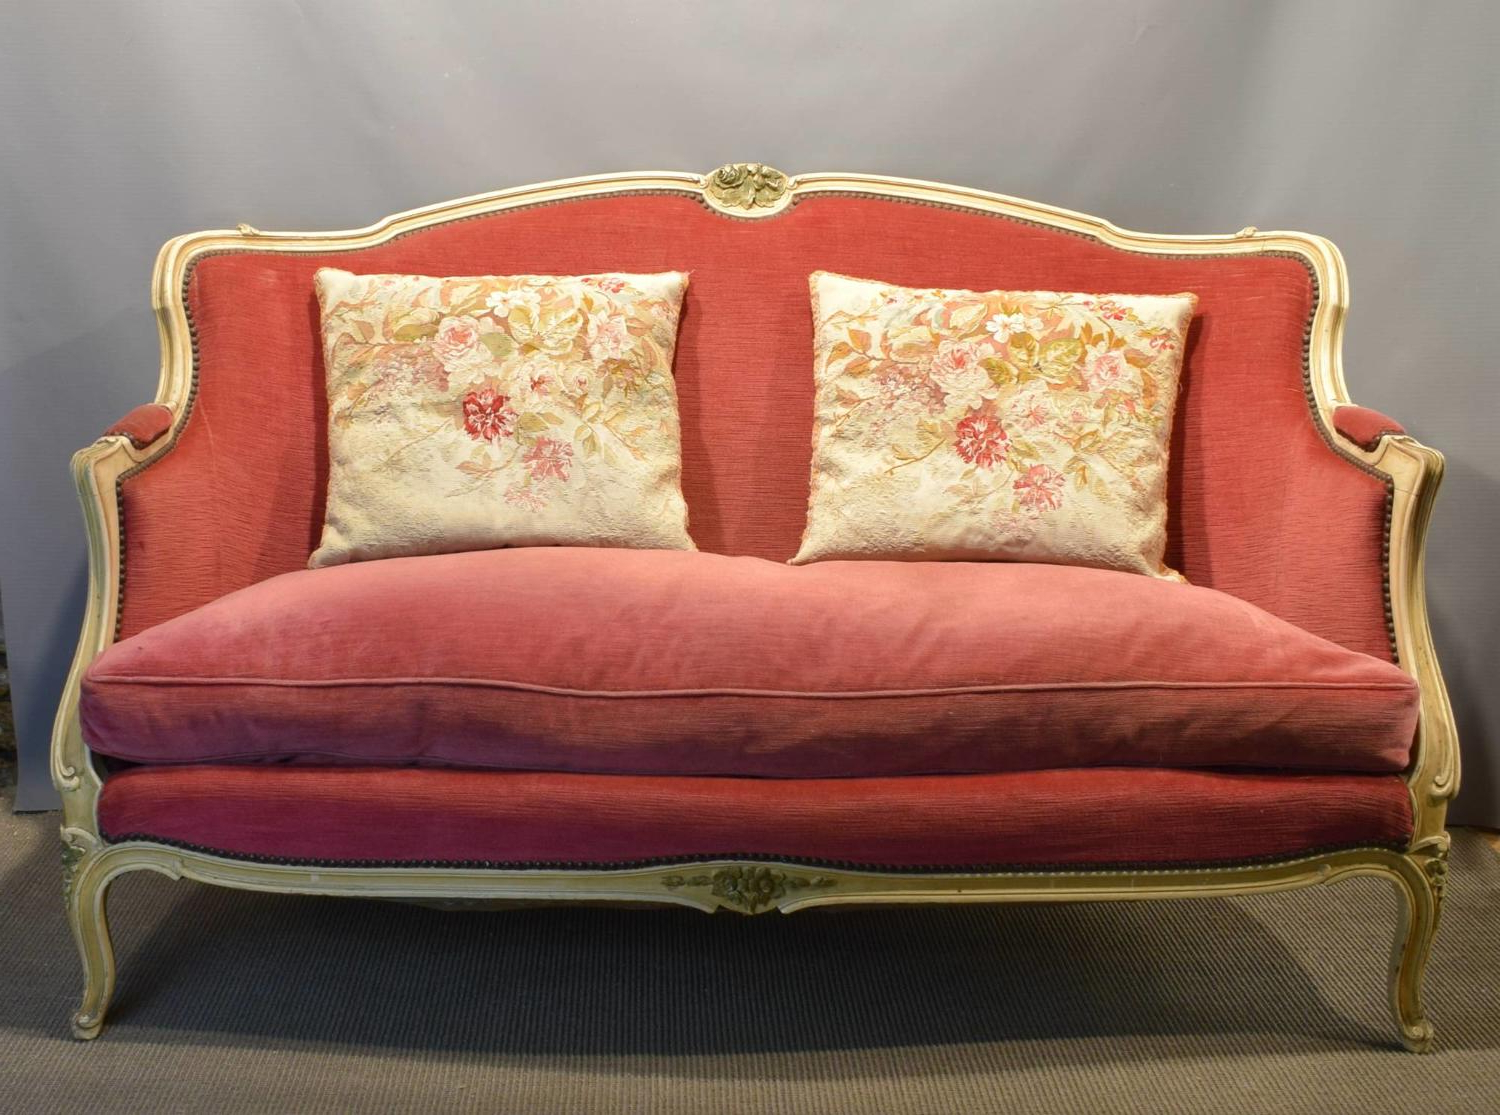 French Seamed Sectional Sofas In Velvet In Most Recently Released Vintage French Pink Velvet Sofa In Louis Xv Style In Furniture (View 19 of 20)